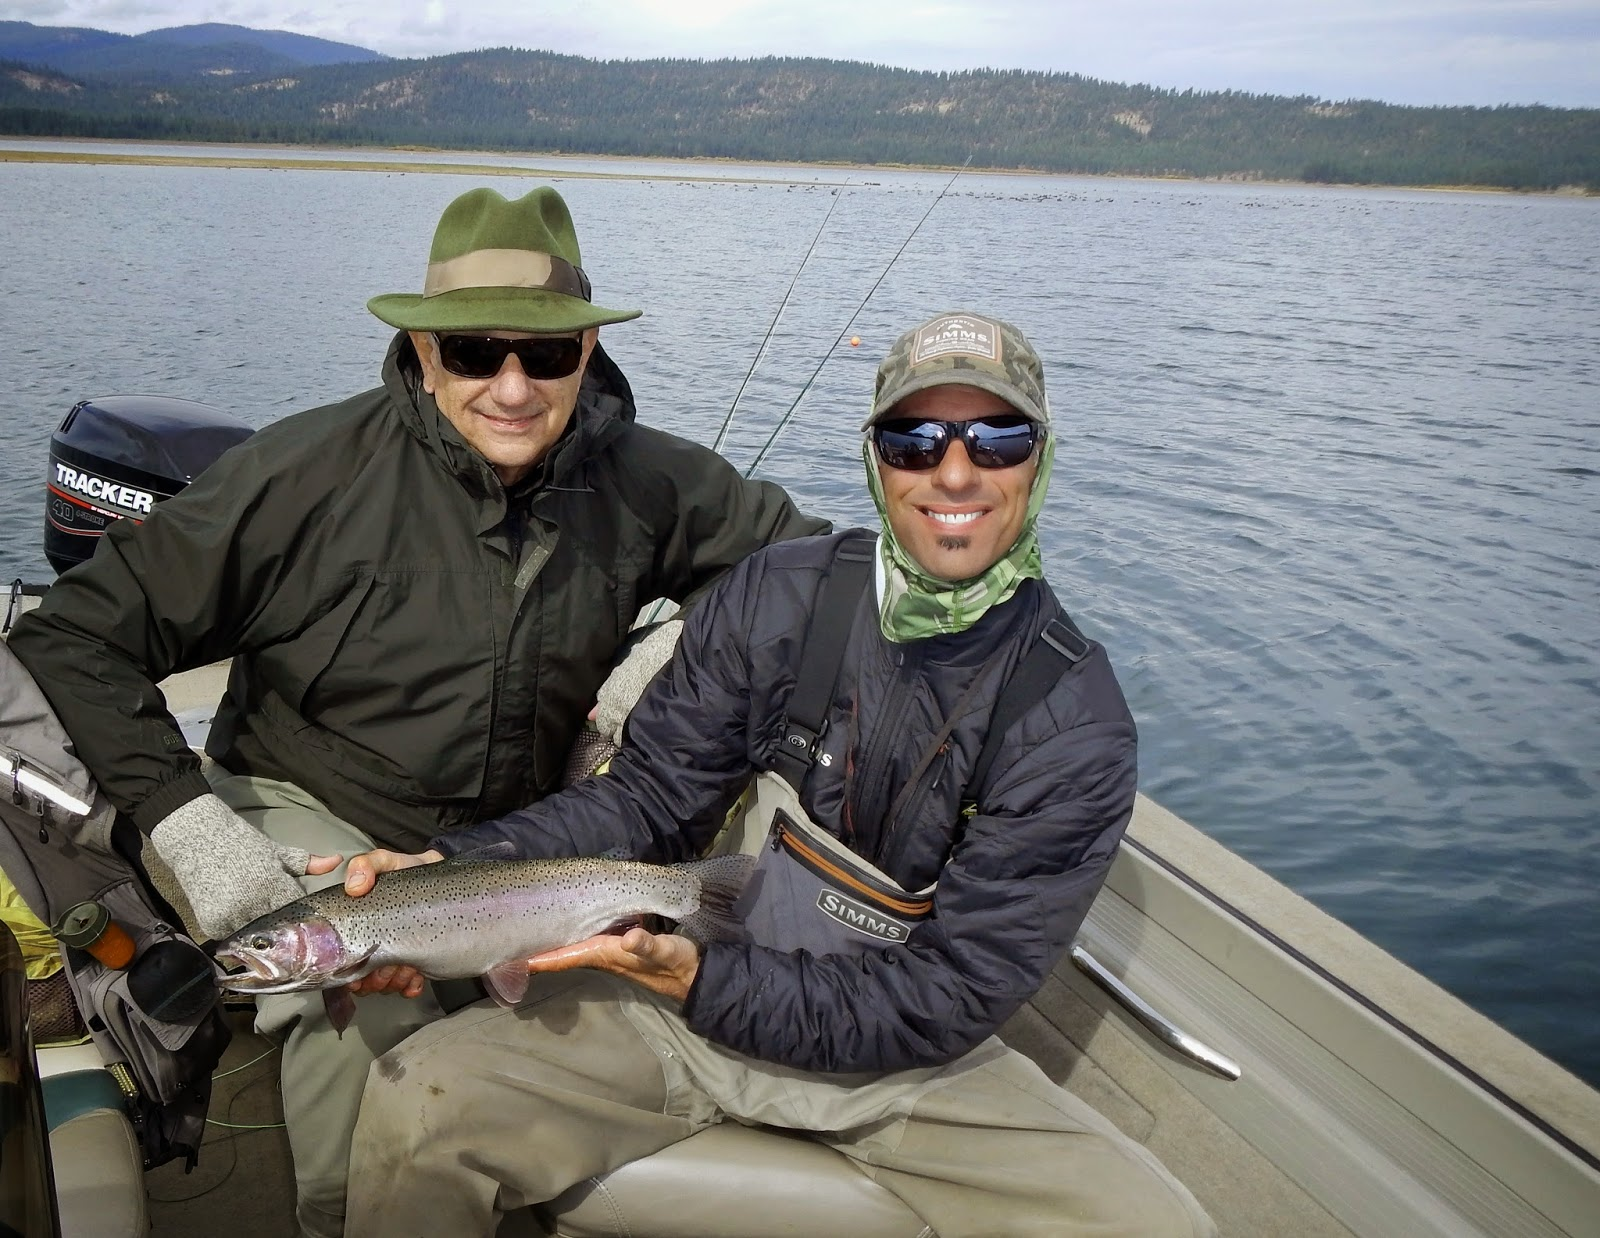 Jon baiocchi fly fishing news lake davis fishing report for Lake fishing games